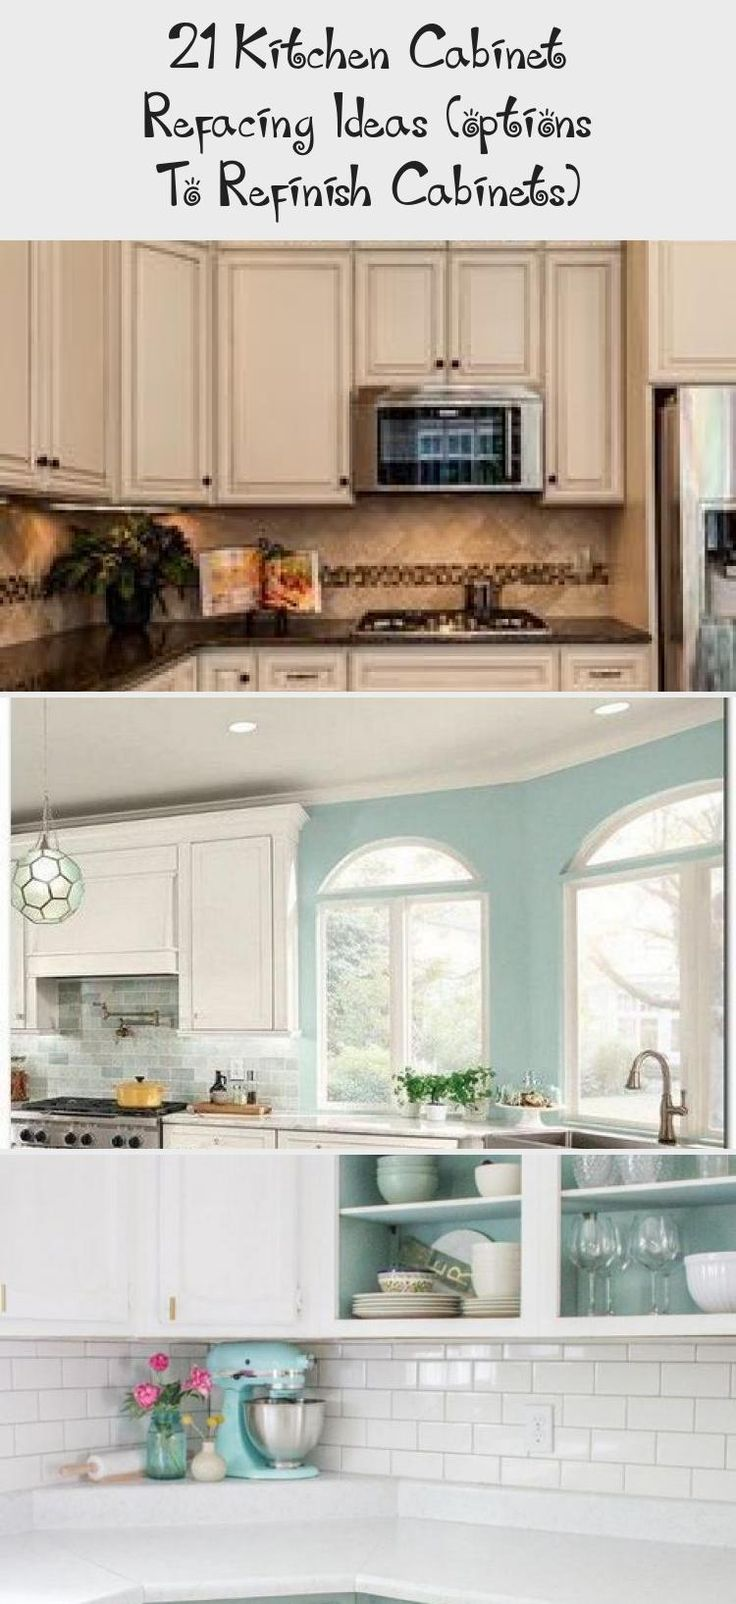 21 Kitchen Cabinet Refacing Ideas (options To Refinish ...